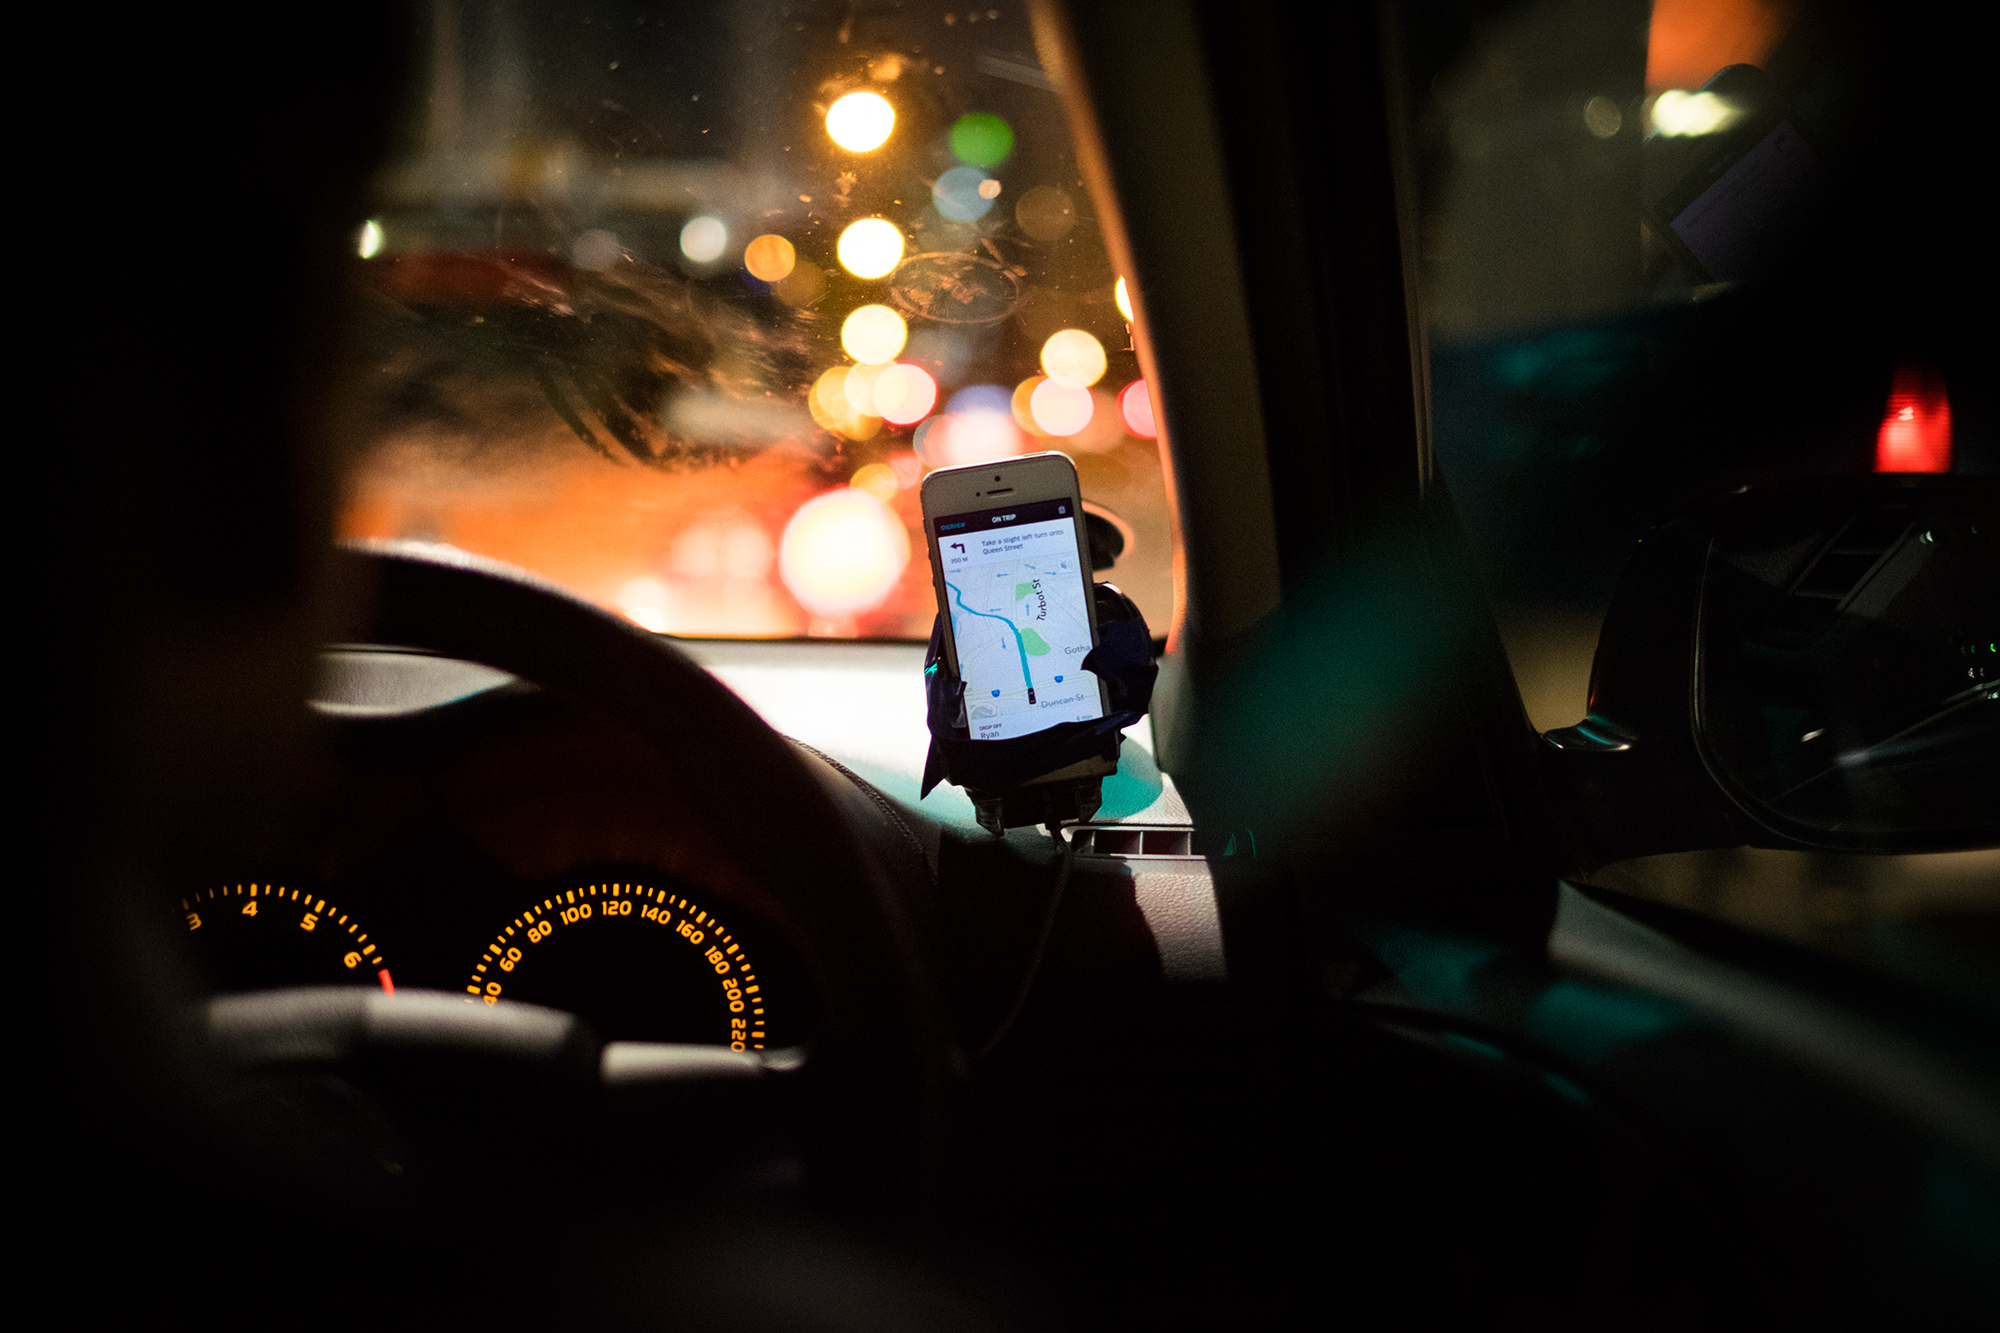 A driver using Uber. Photo by noeltock/flickr/CC BY-NC 2.0